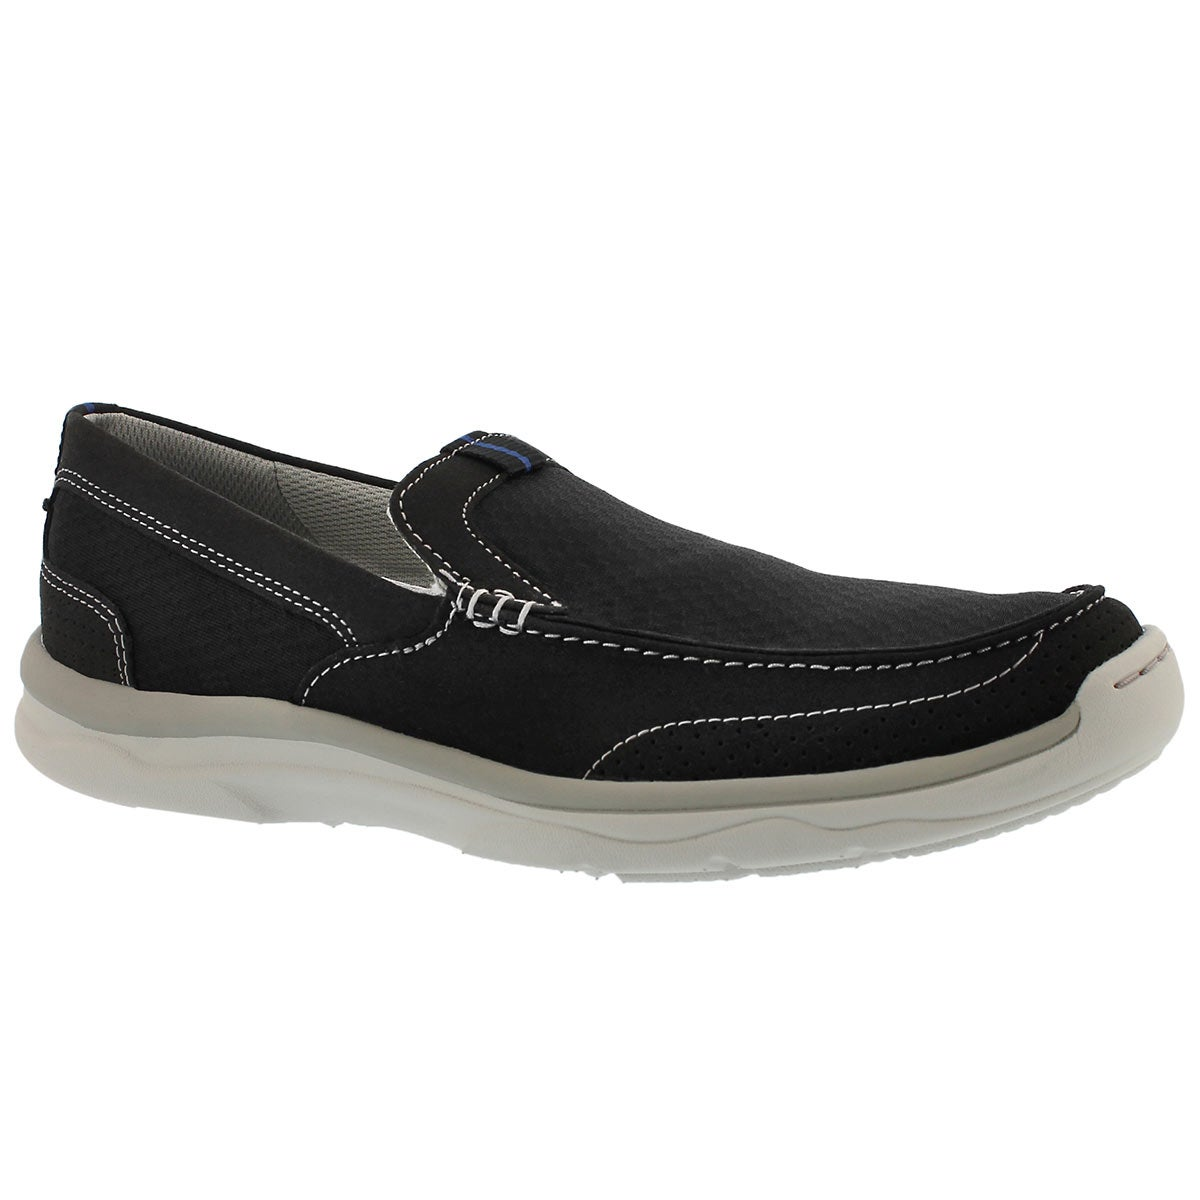 Men's MARUS STEP black casual slip on shoes